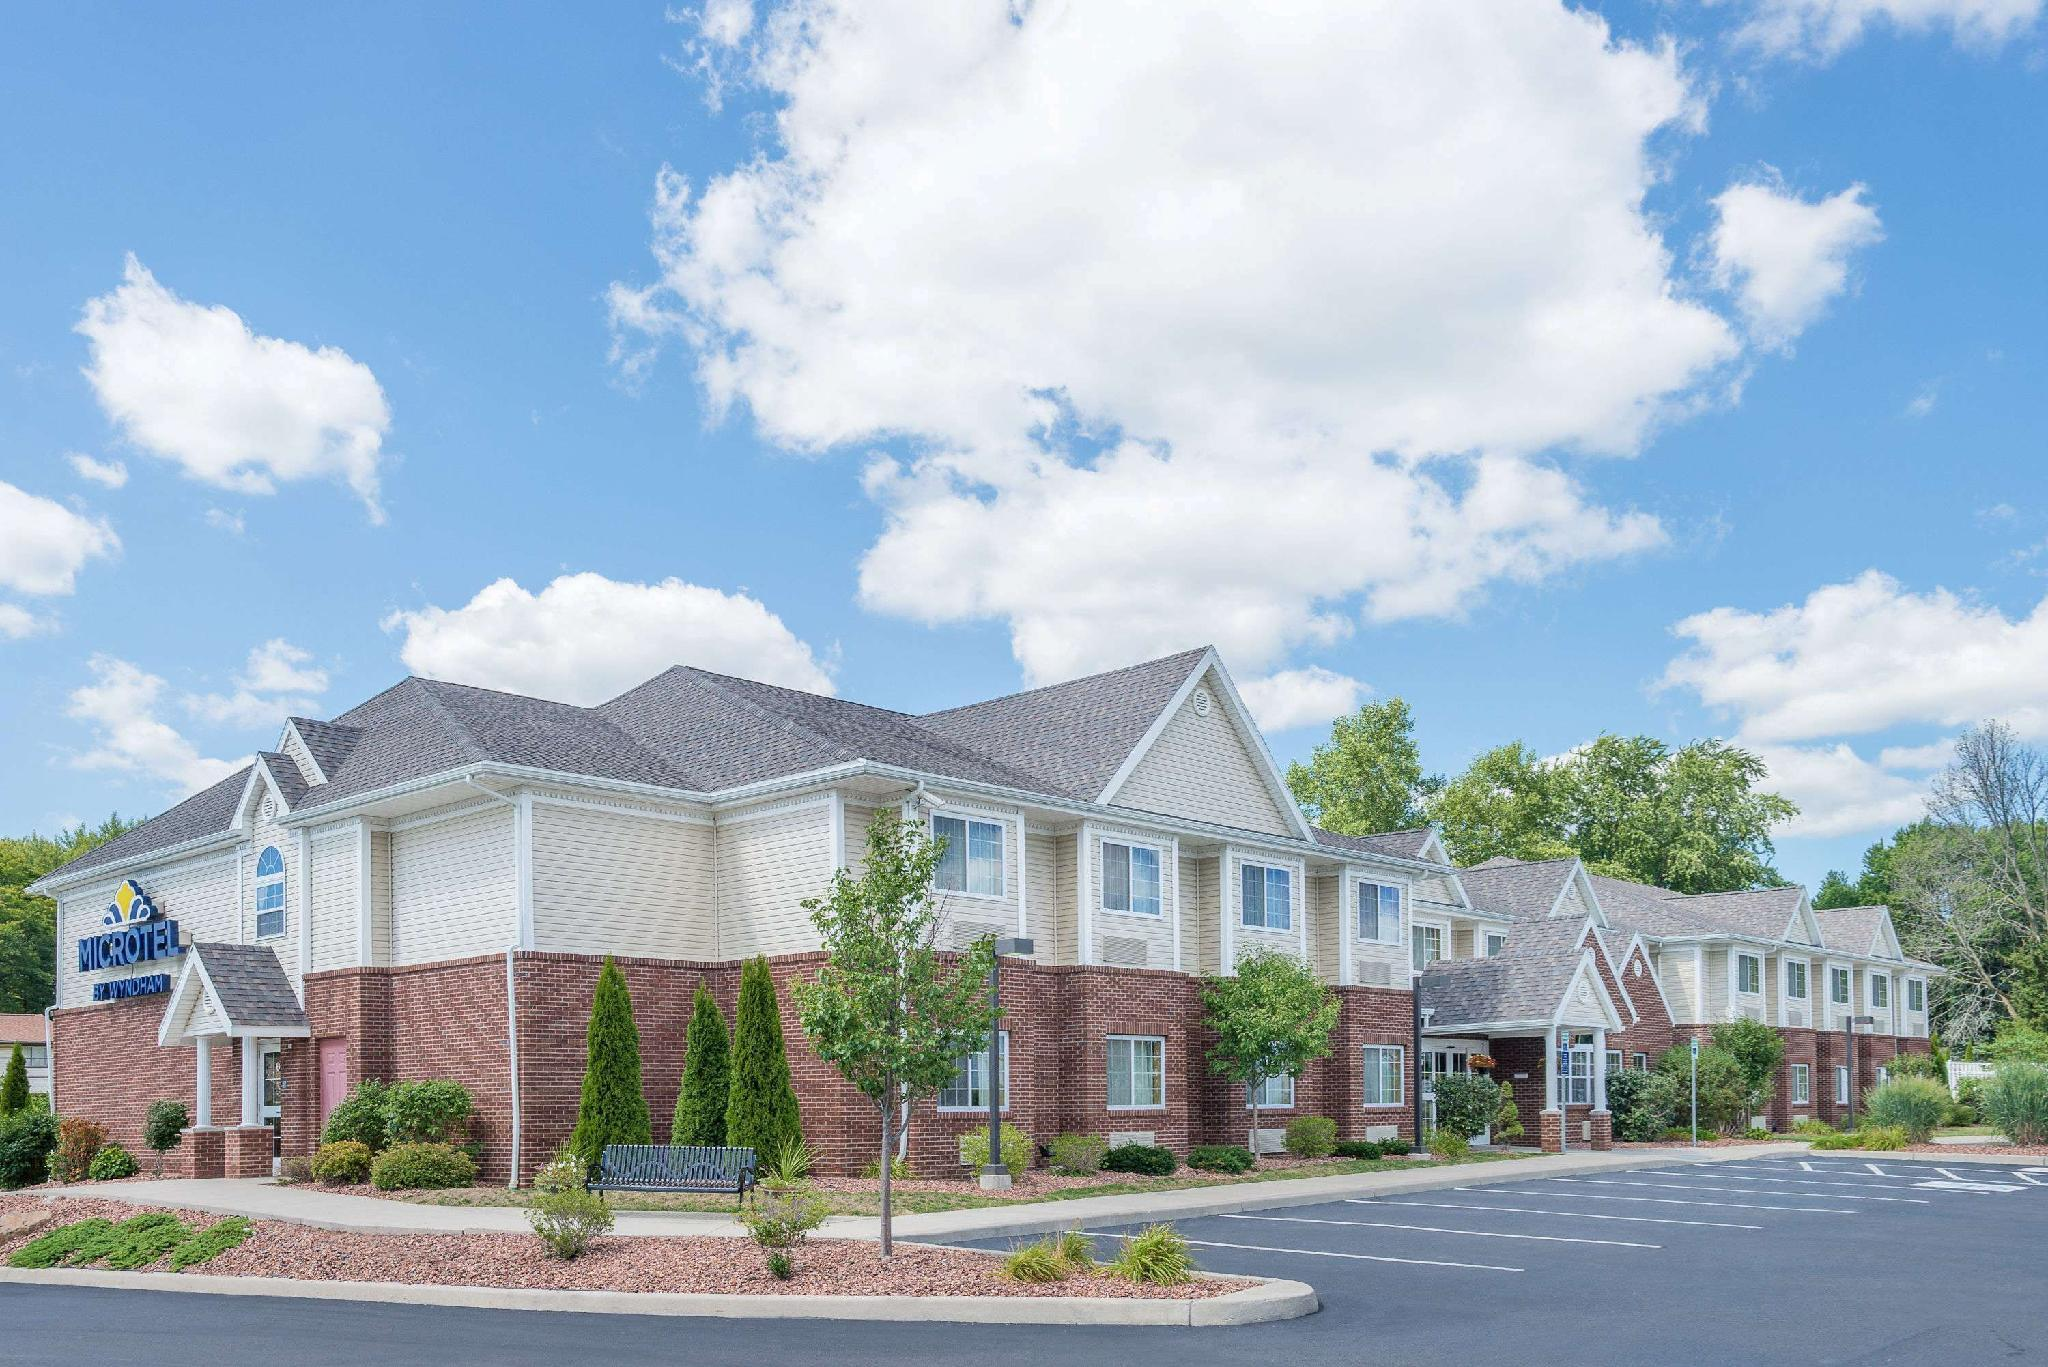 Microtel Inn And Suites By Wyndham Chili Rochester Airport